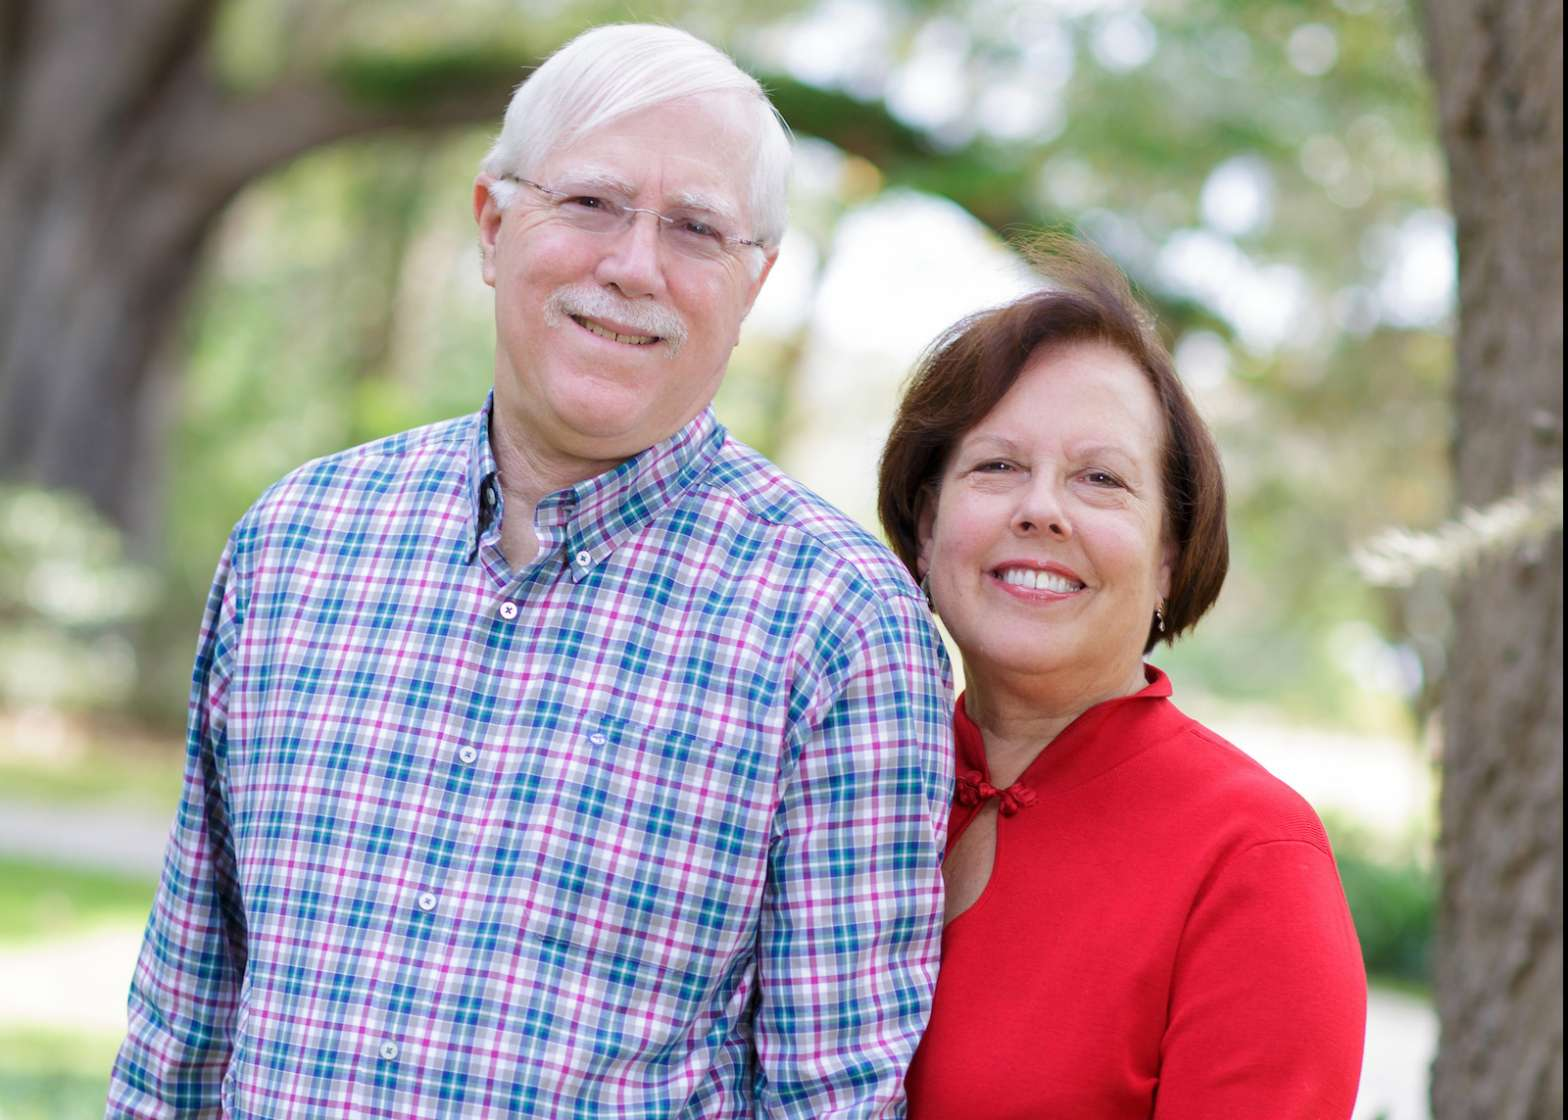 The charitable remainder unitrust, or CRUT, established by the Williamses allows the couple to give a sizeable gift to scholarships now that impacts current students, while at the same time providing them with income. The remainder of the asset goes to UF after 20 years.